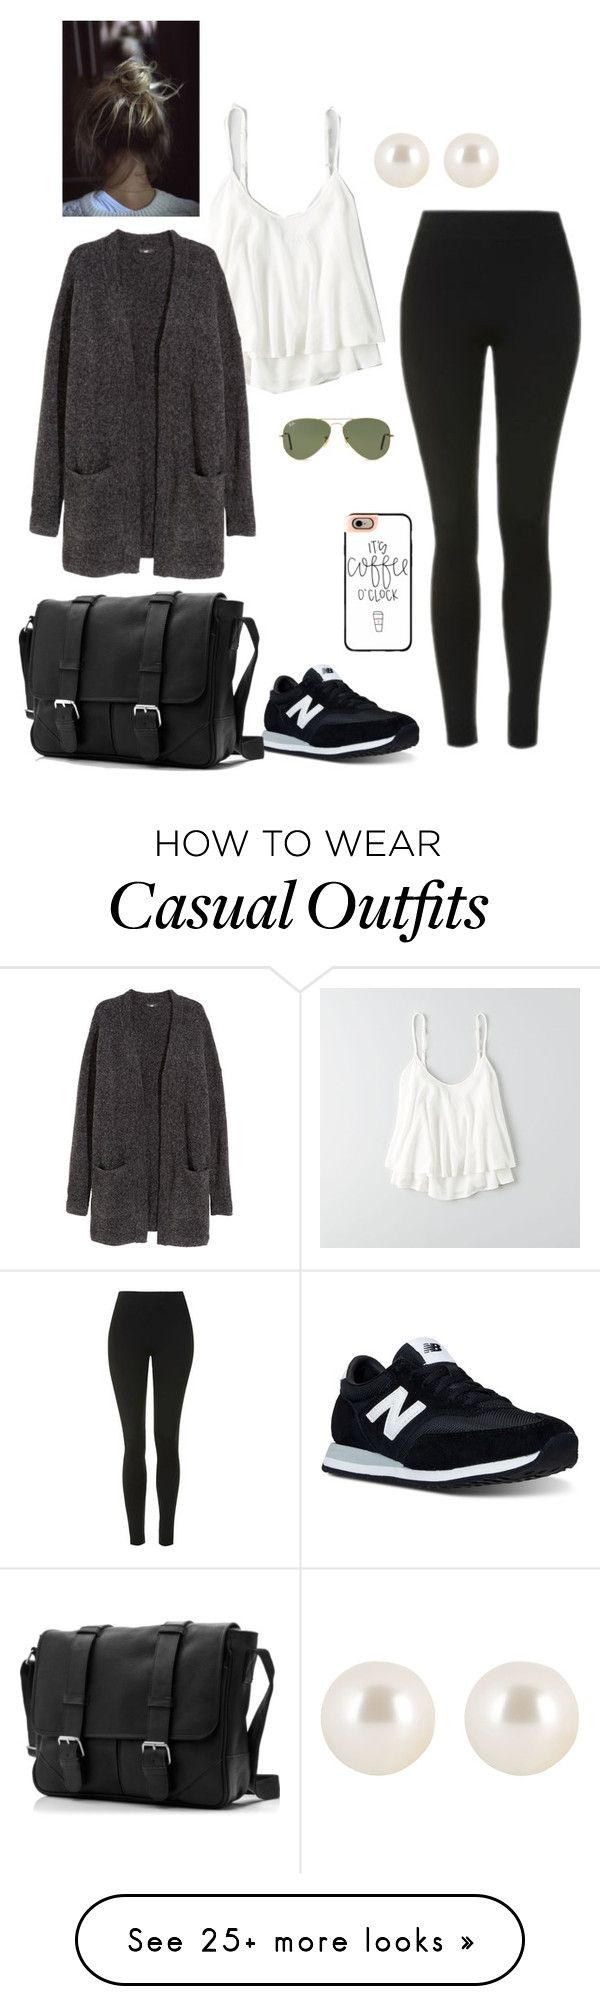 """Casual"" by nikke9doors on Polyvore featuring Topshop, New Balance, American Eagle Outfitters, Casetify, H&M, Ray-Ban and Henri Bendel"